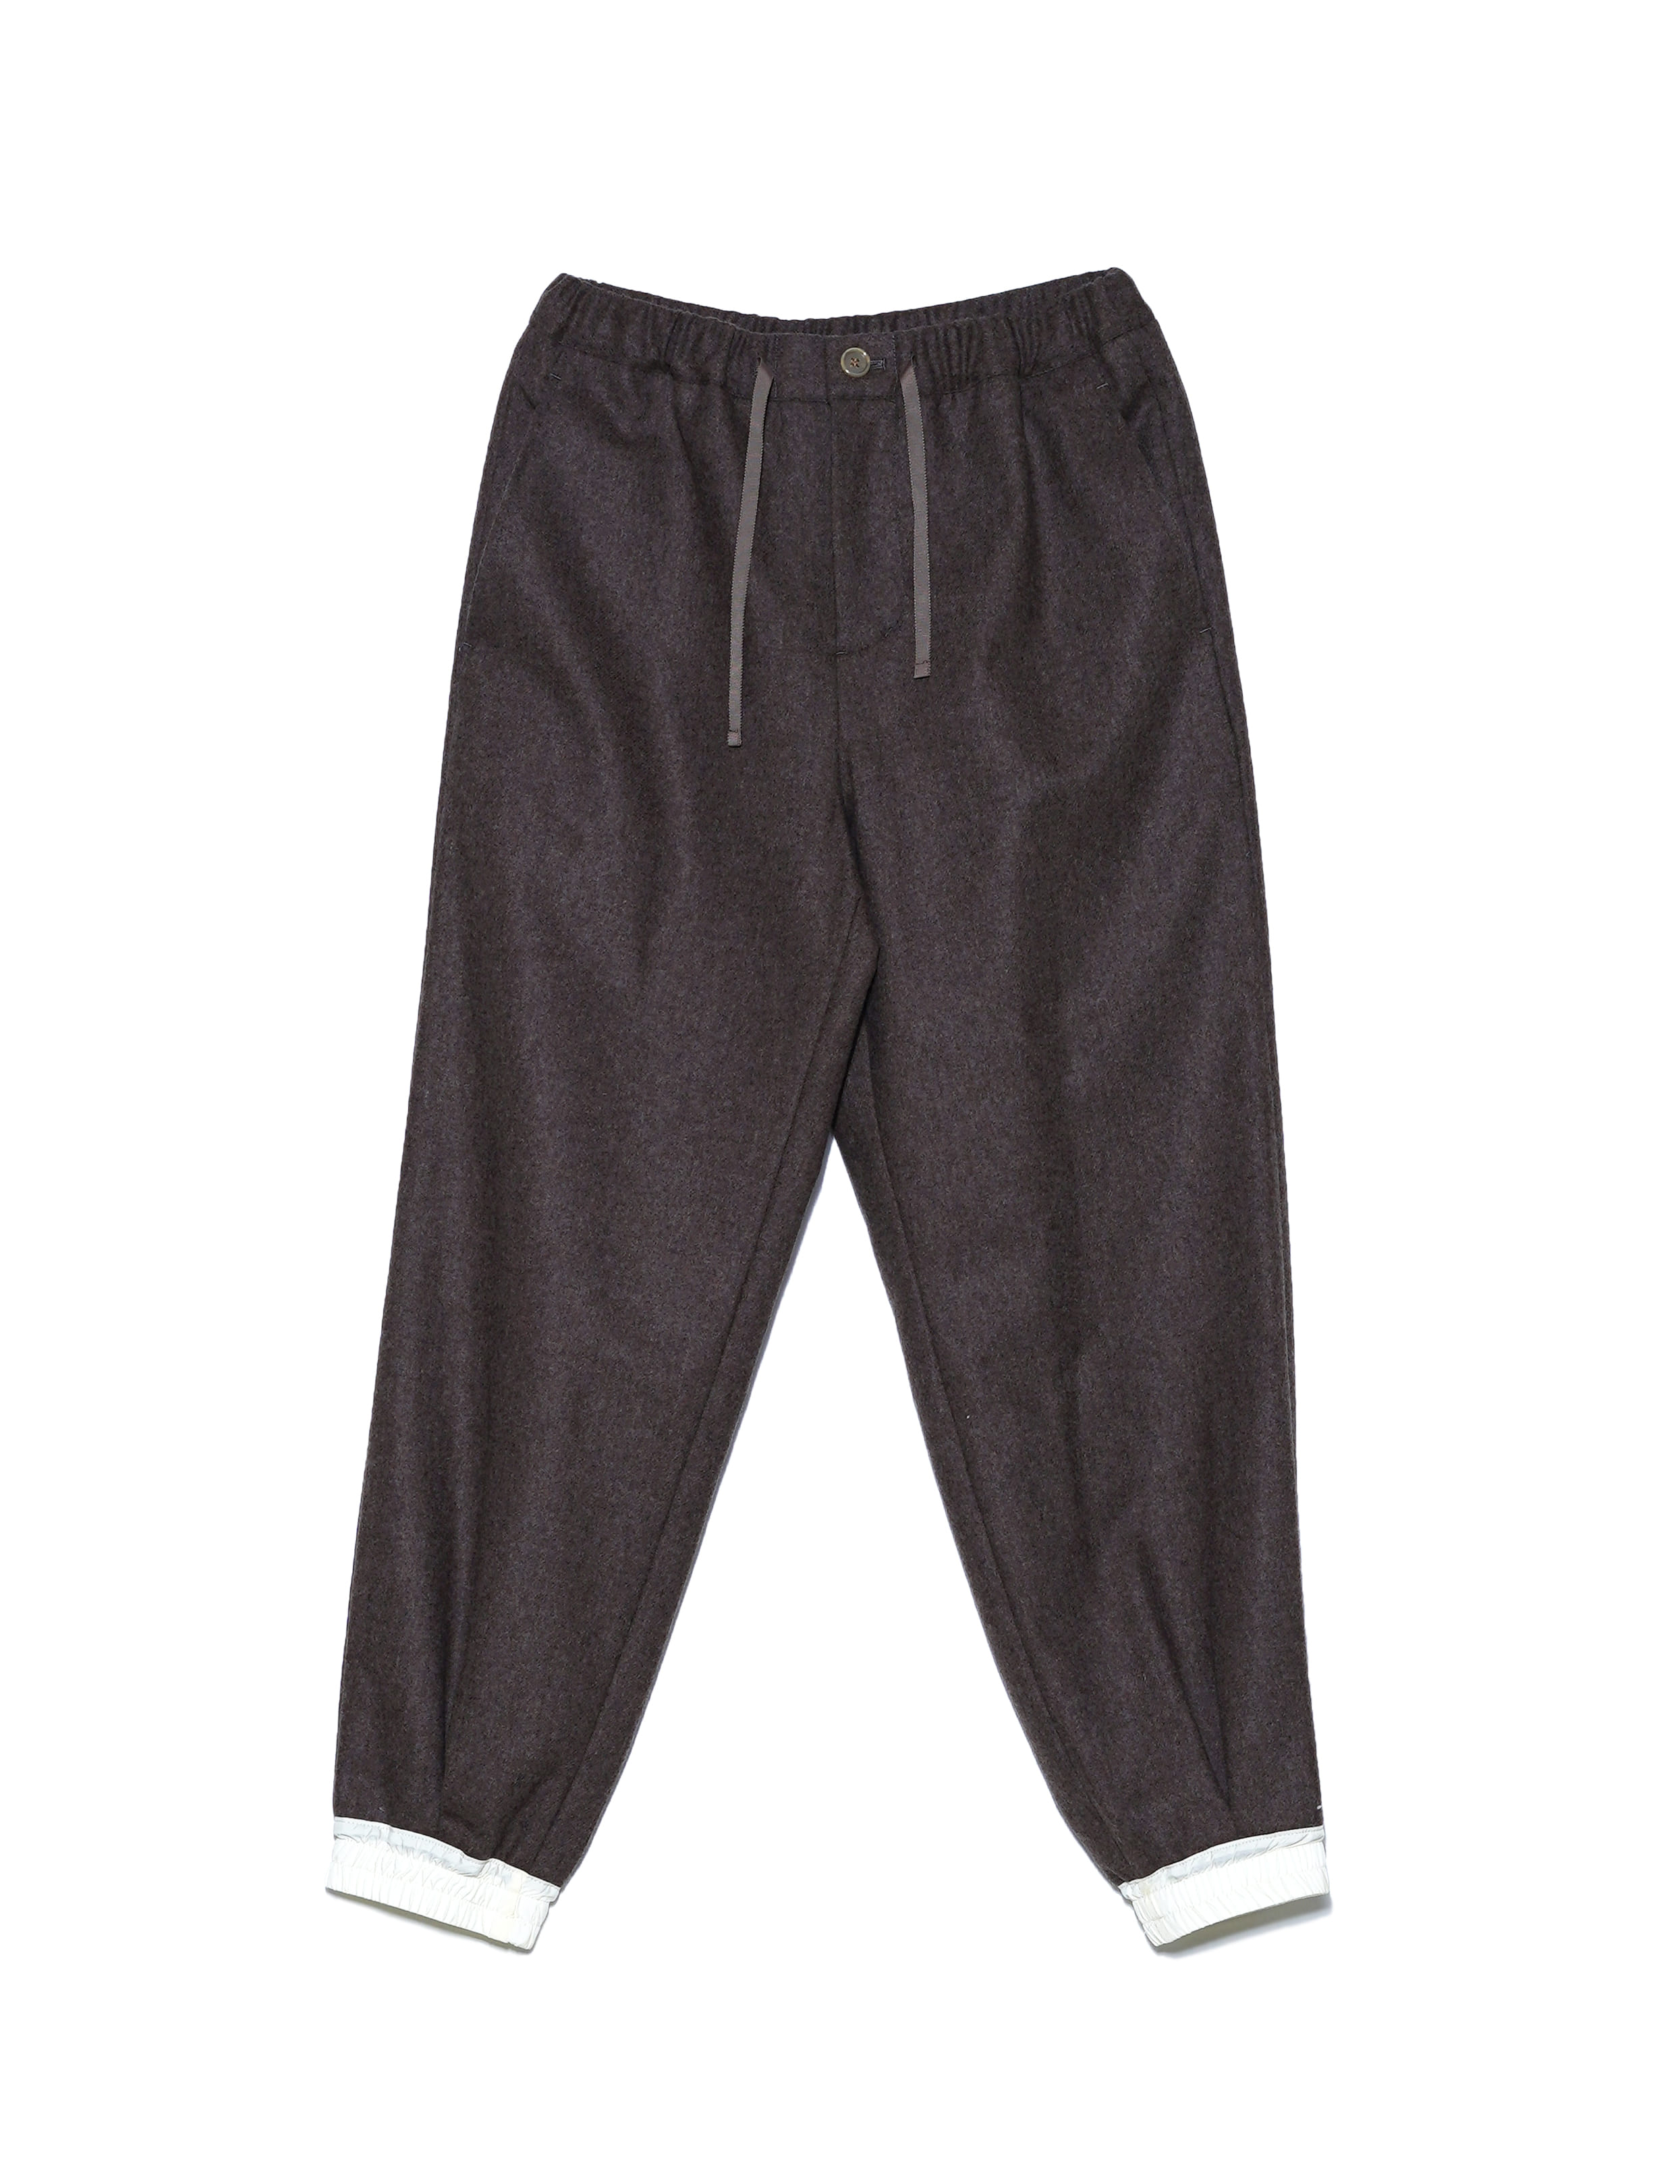 WOOL EASY PANTS (BROWN)